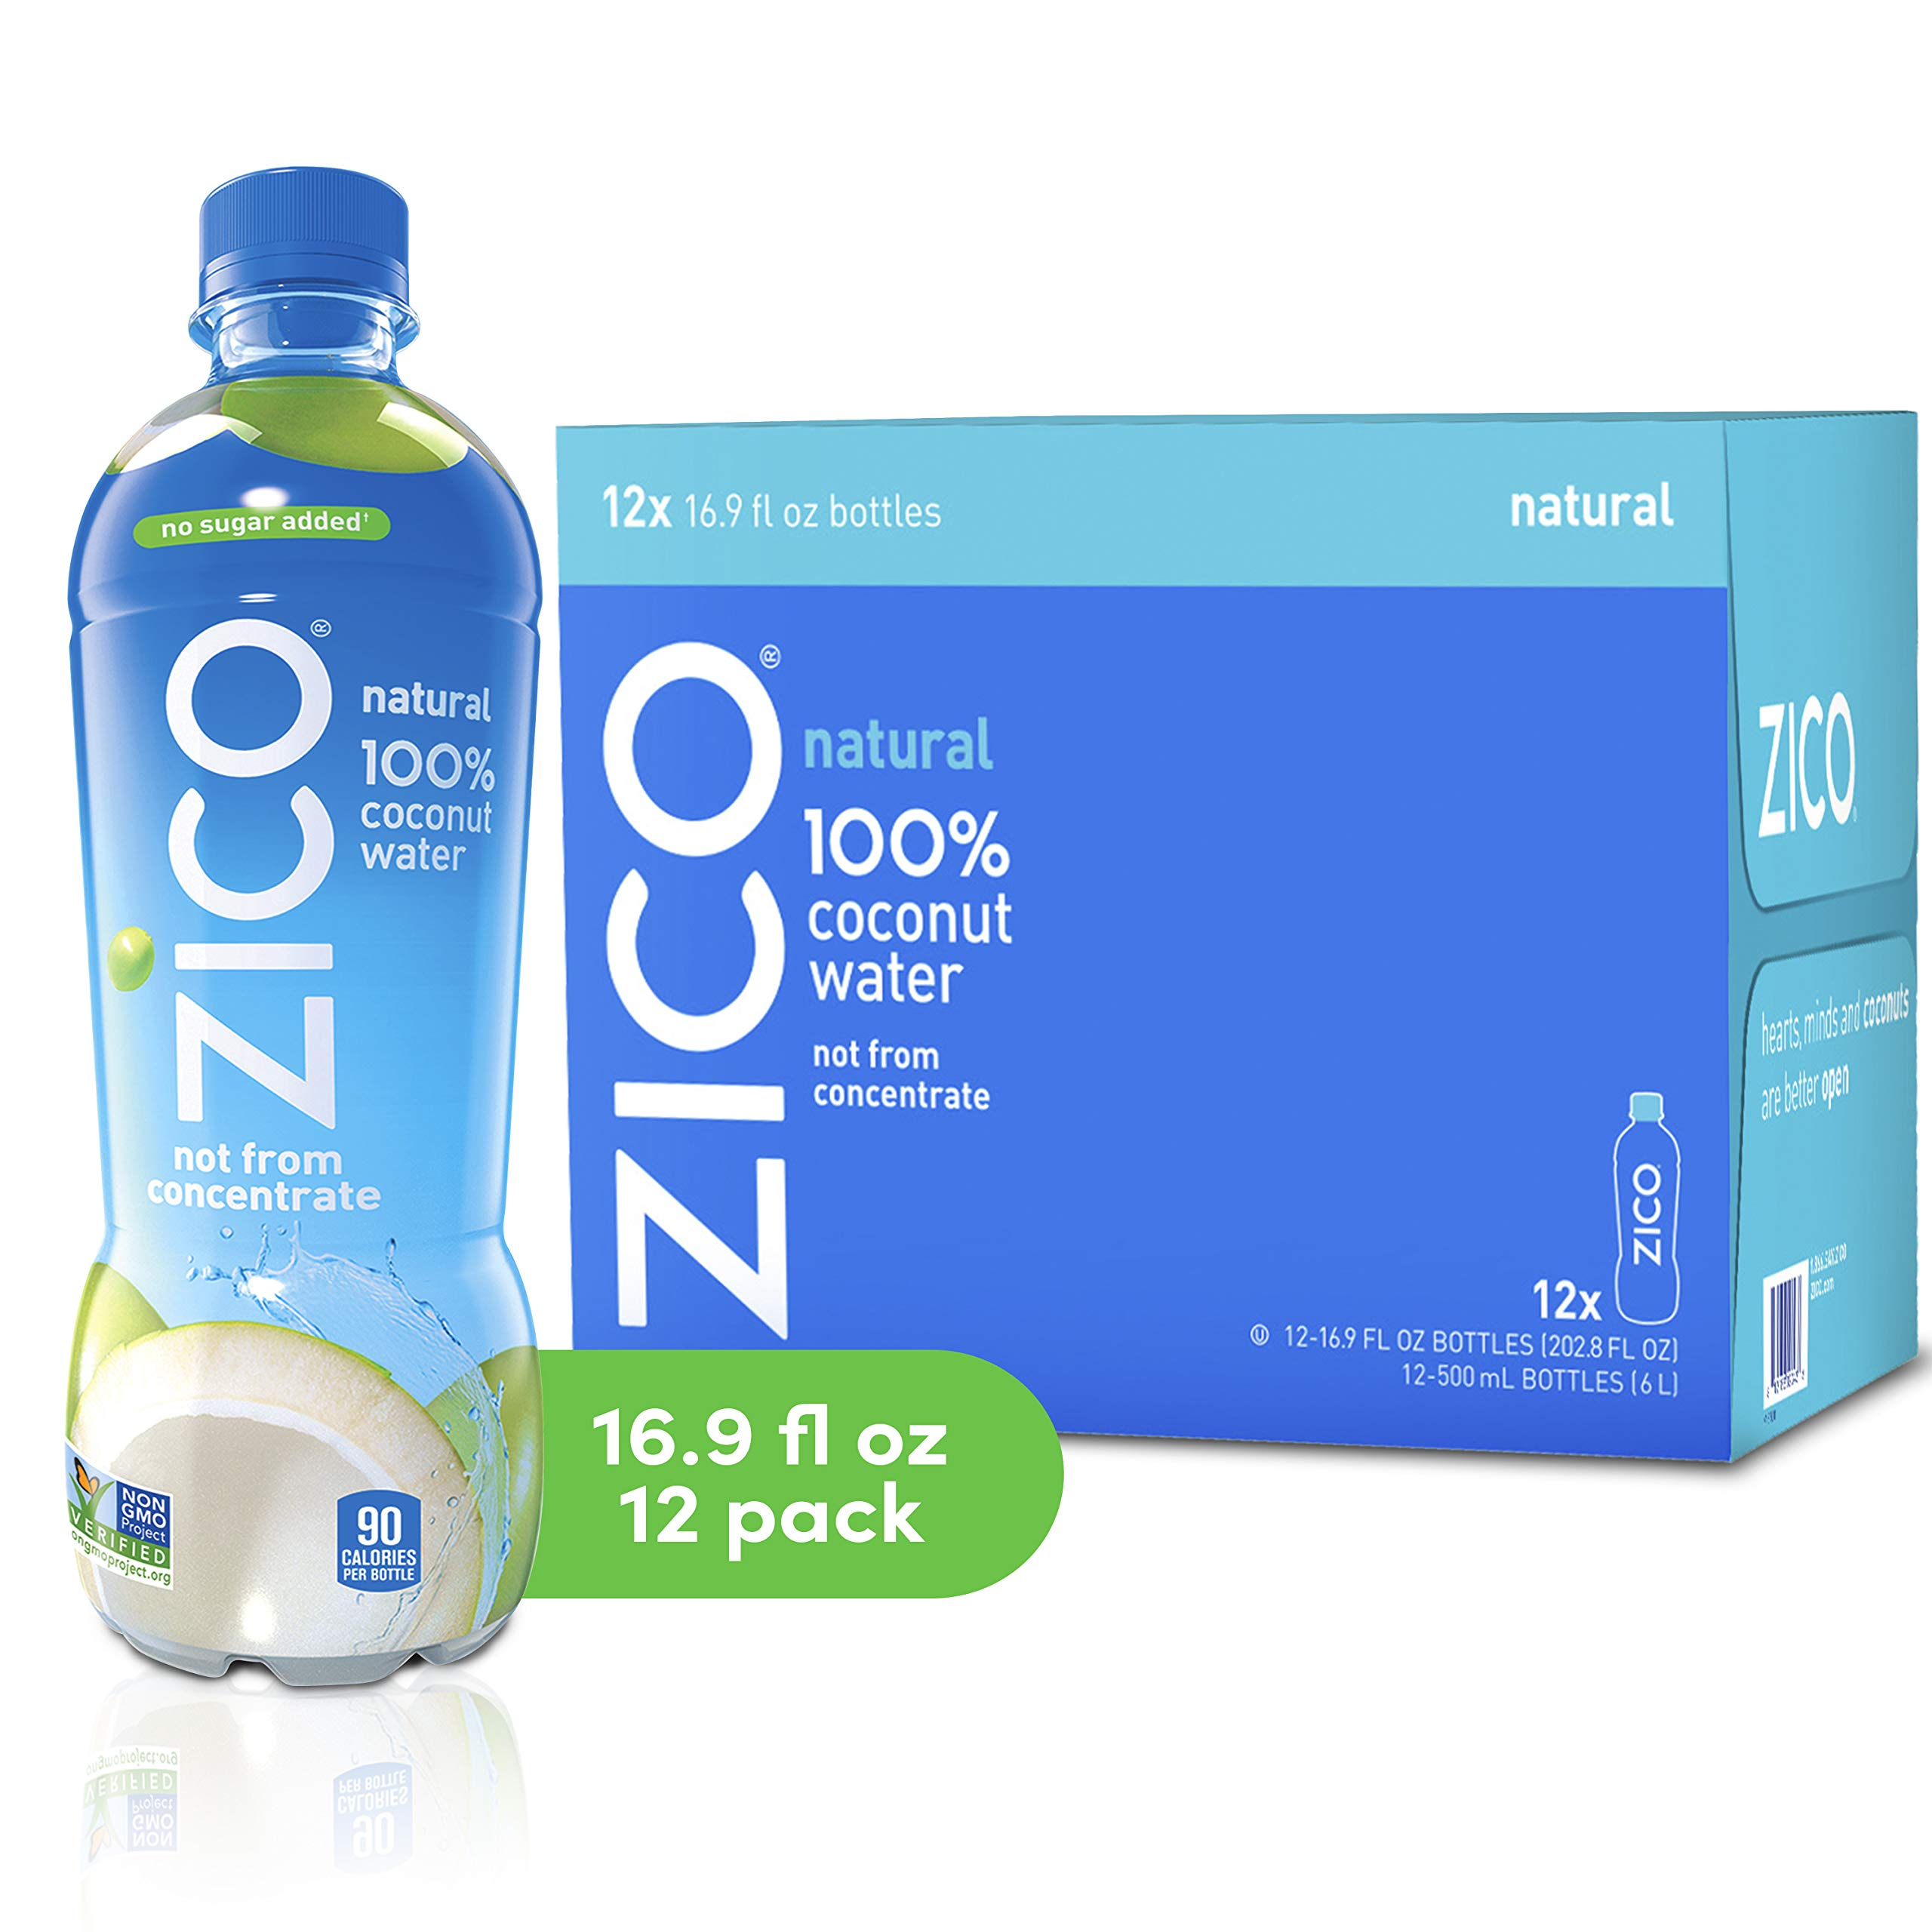 ZICO Natural 100% Coconut Water Drink, No Sugar Added Gluten Free, 16.9 fl oz, 12 Pack by Zico Beverages